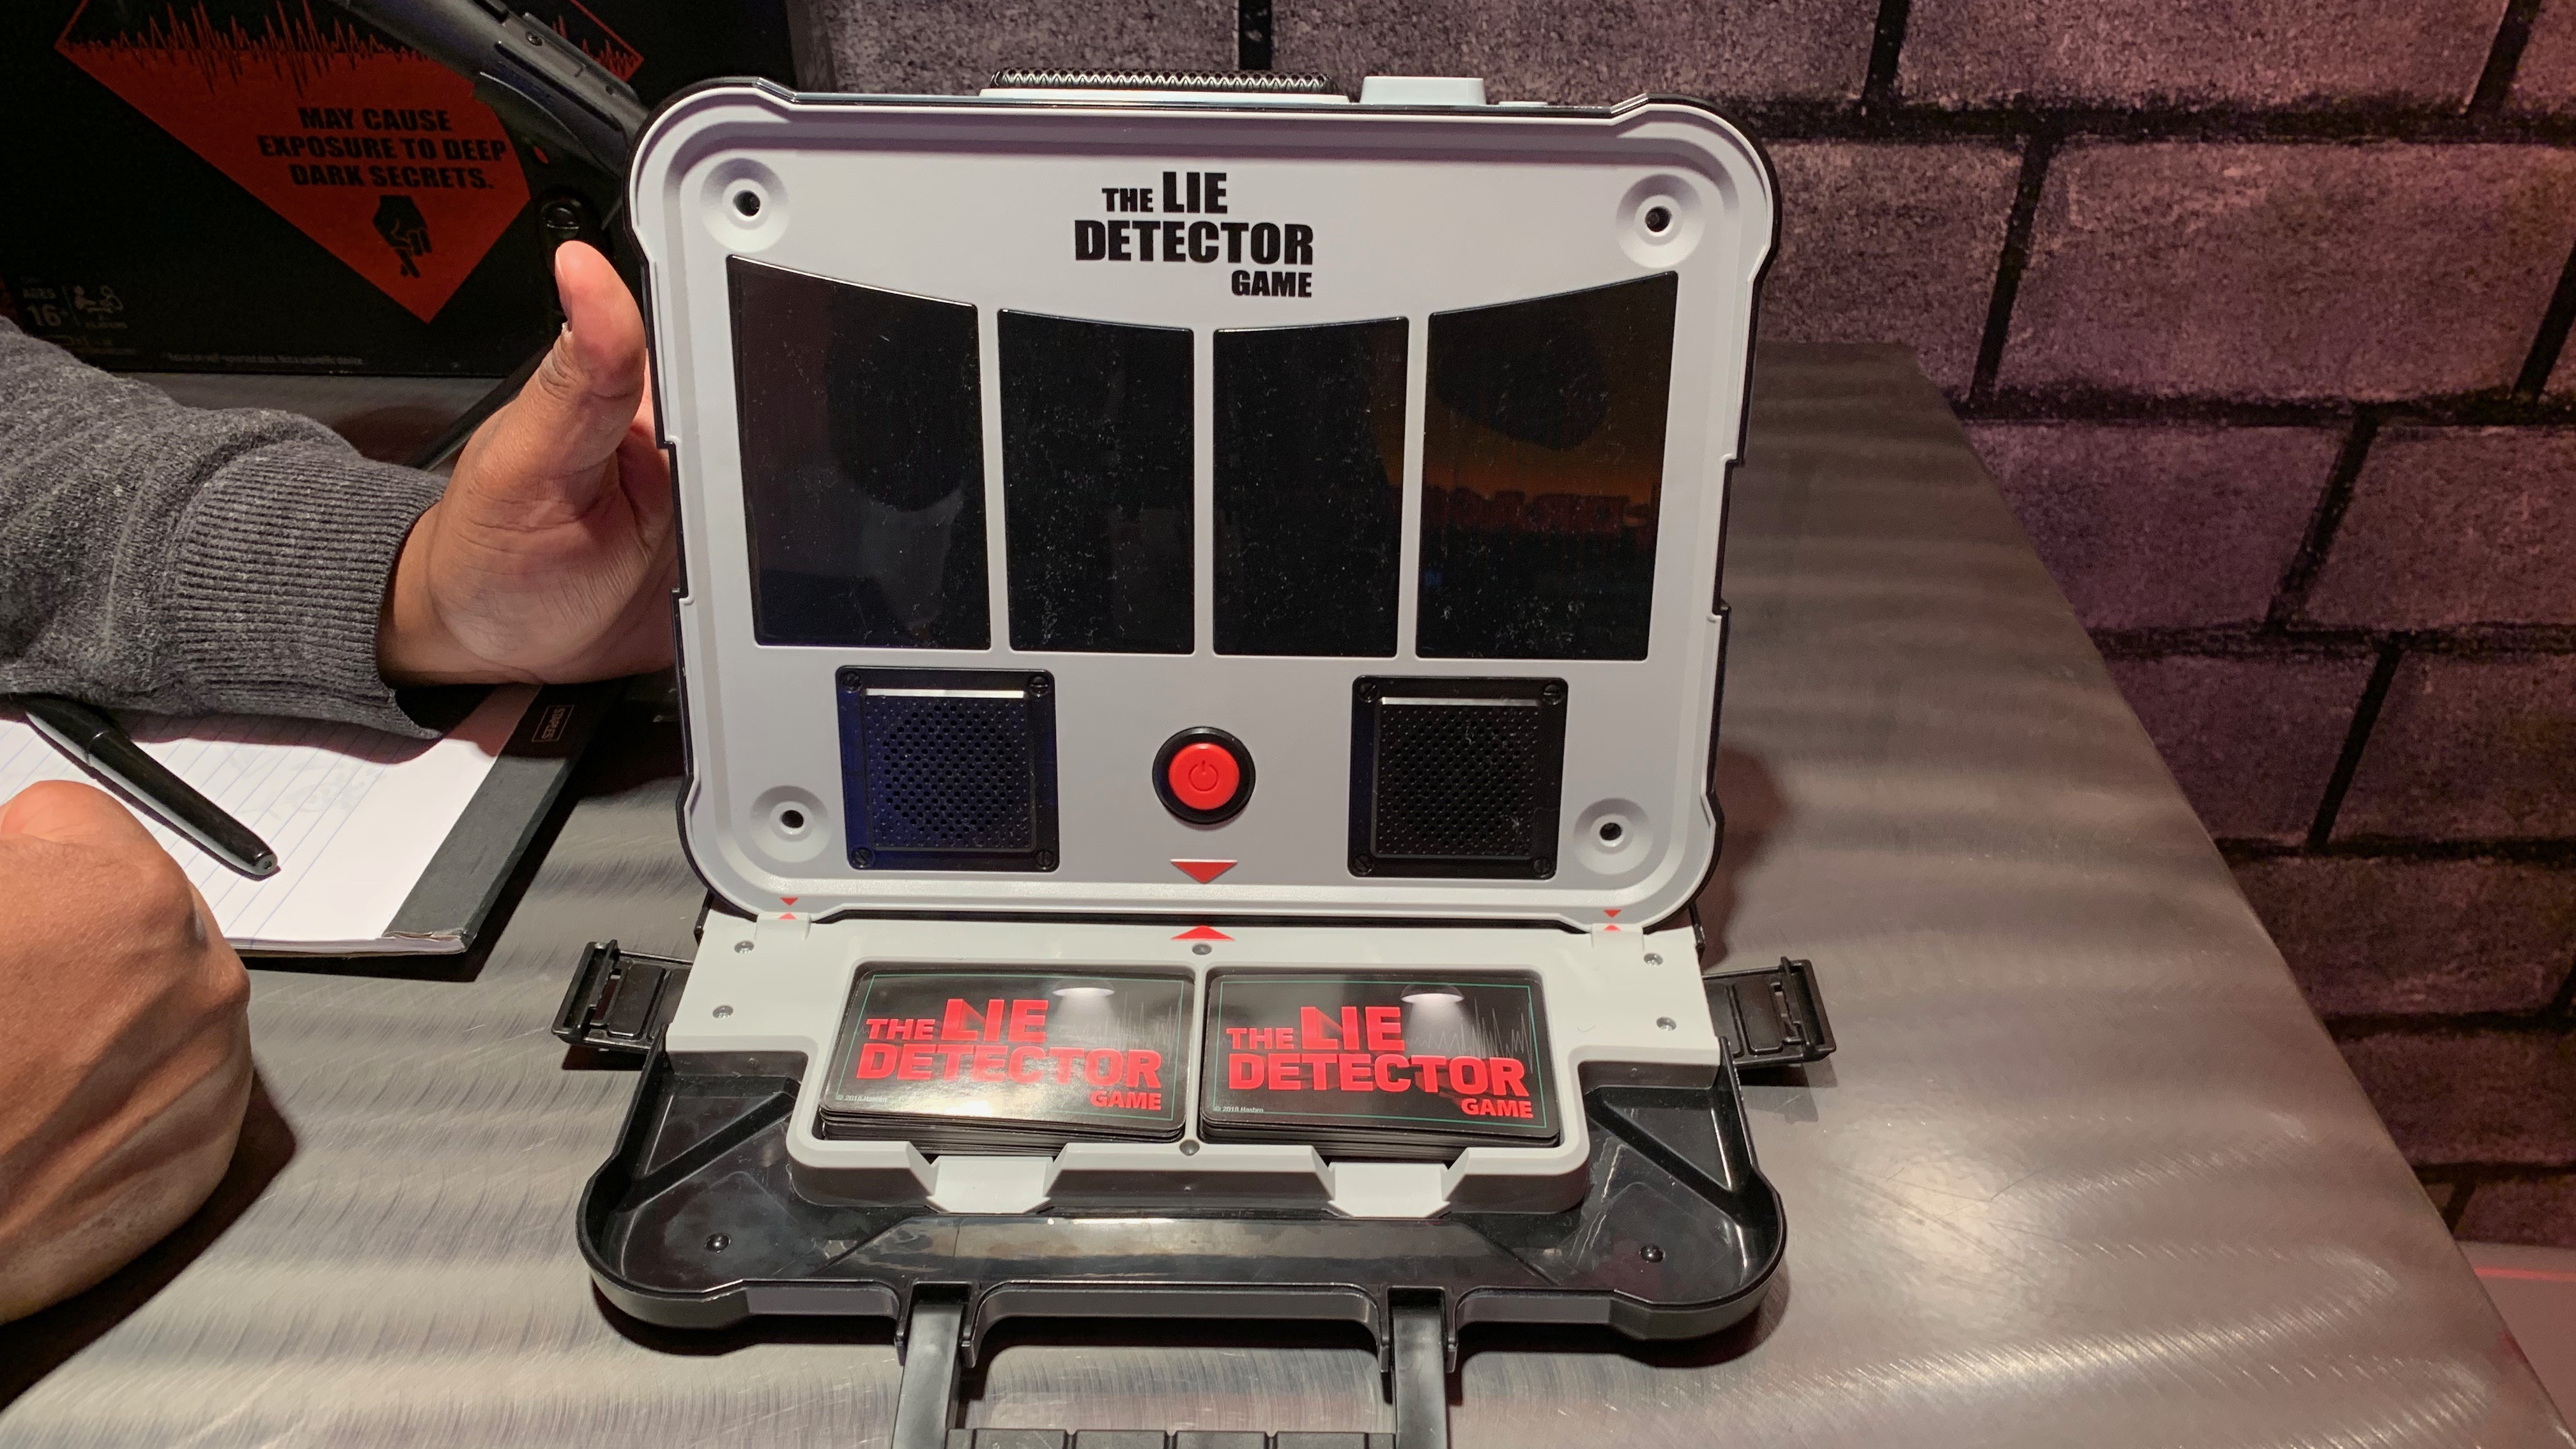 rfzMHAB8CpksQvh3i72A4Z - Tech toys 2019: the best new games and gadgets from the NYC Toy Fair